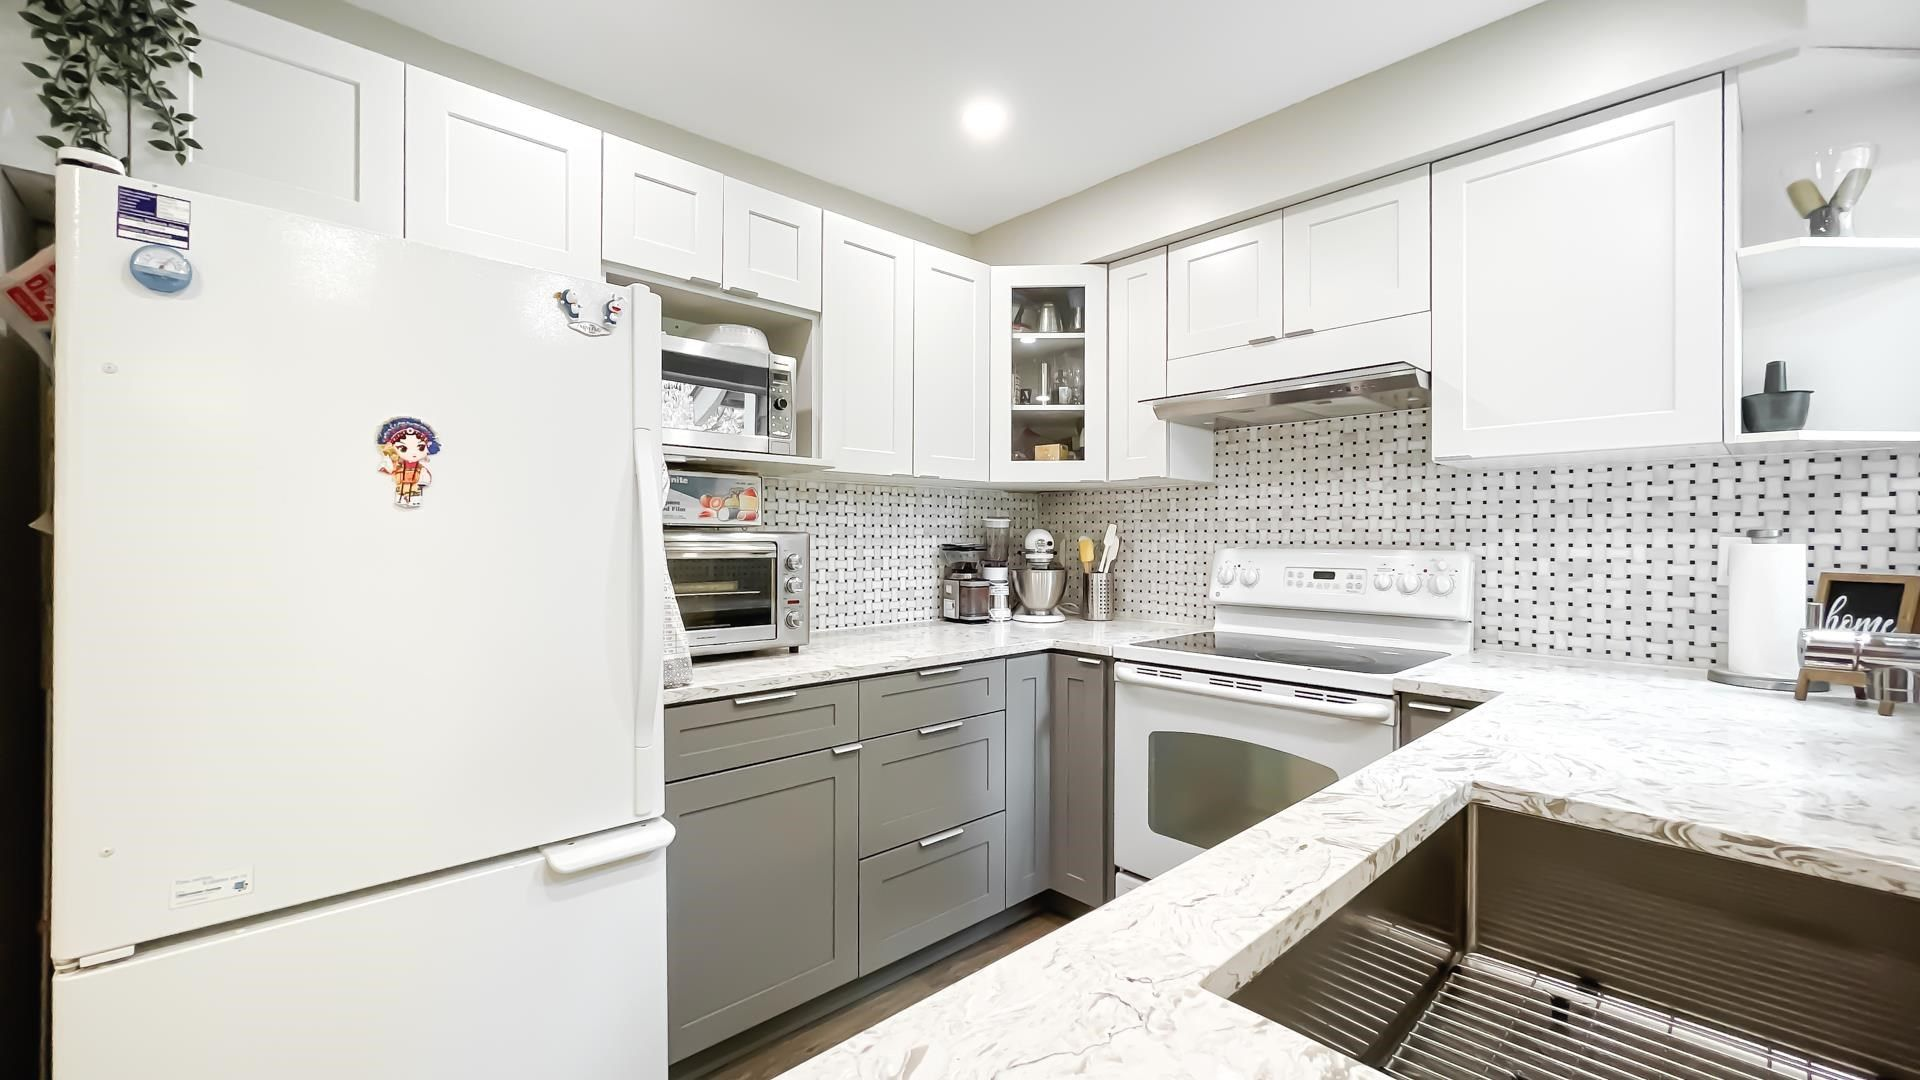 Photo 11: Photos: 66 9000 ASH GROVE CRESCENT in Burnaby: Forest Hills BN Townhouse for sale (Burnaby North)  : MLS®# R2603744